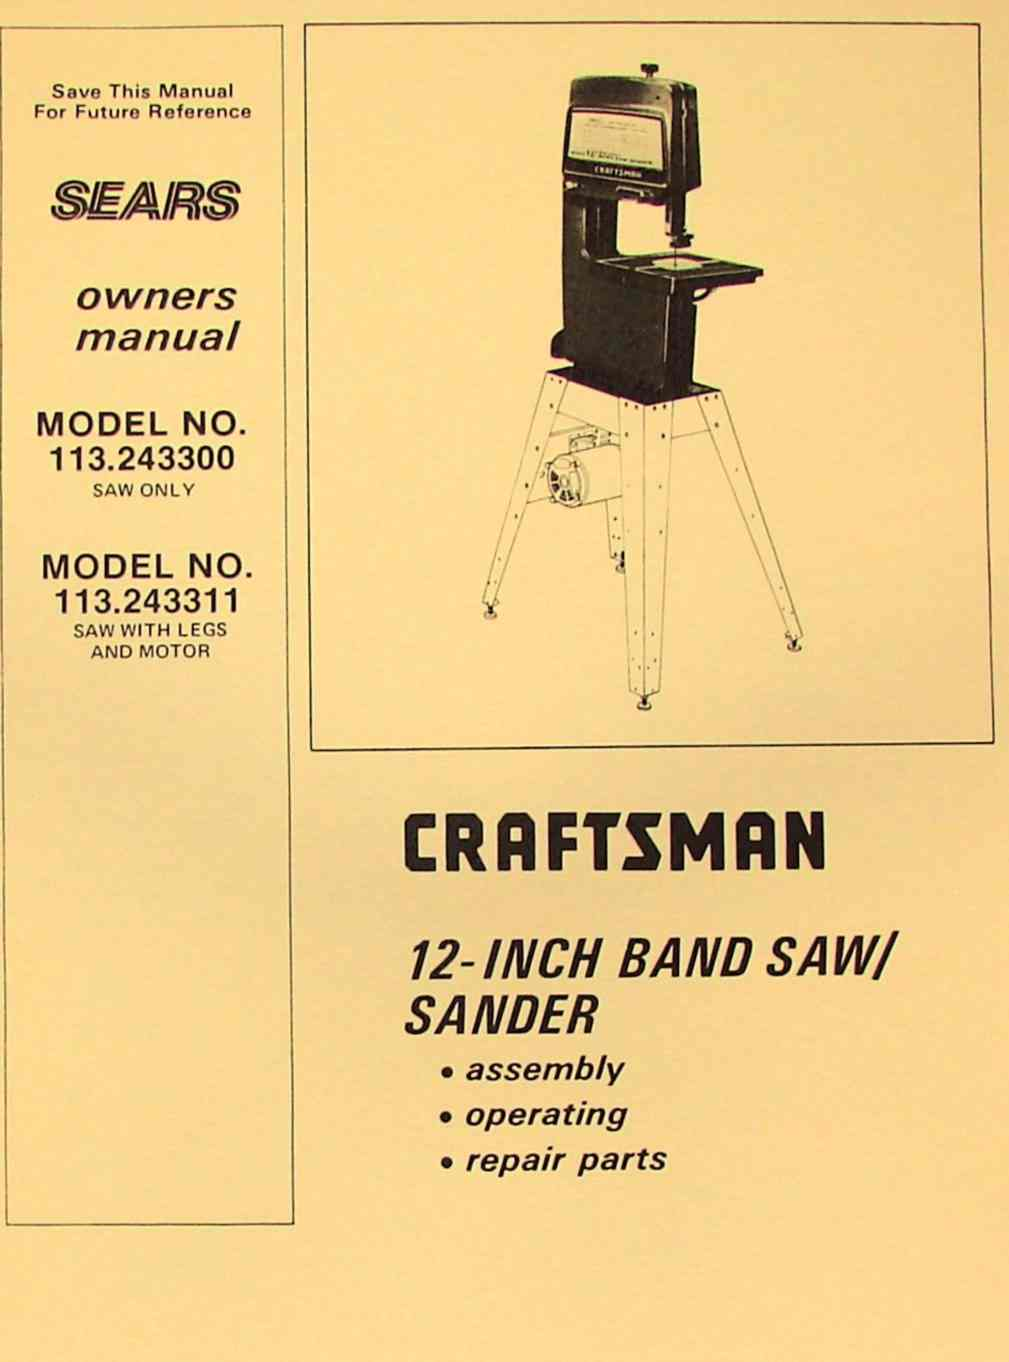 craftsman 12 inch 2 speed band saw manual